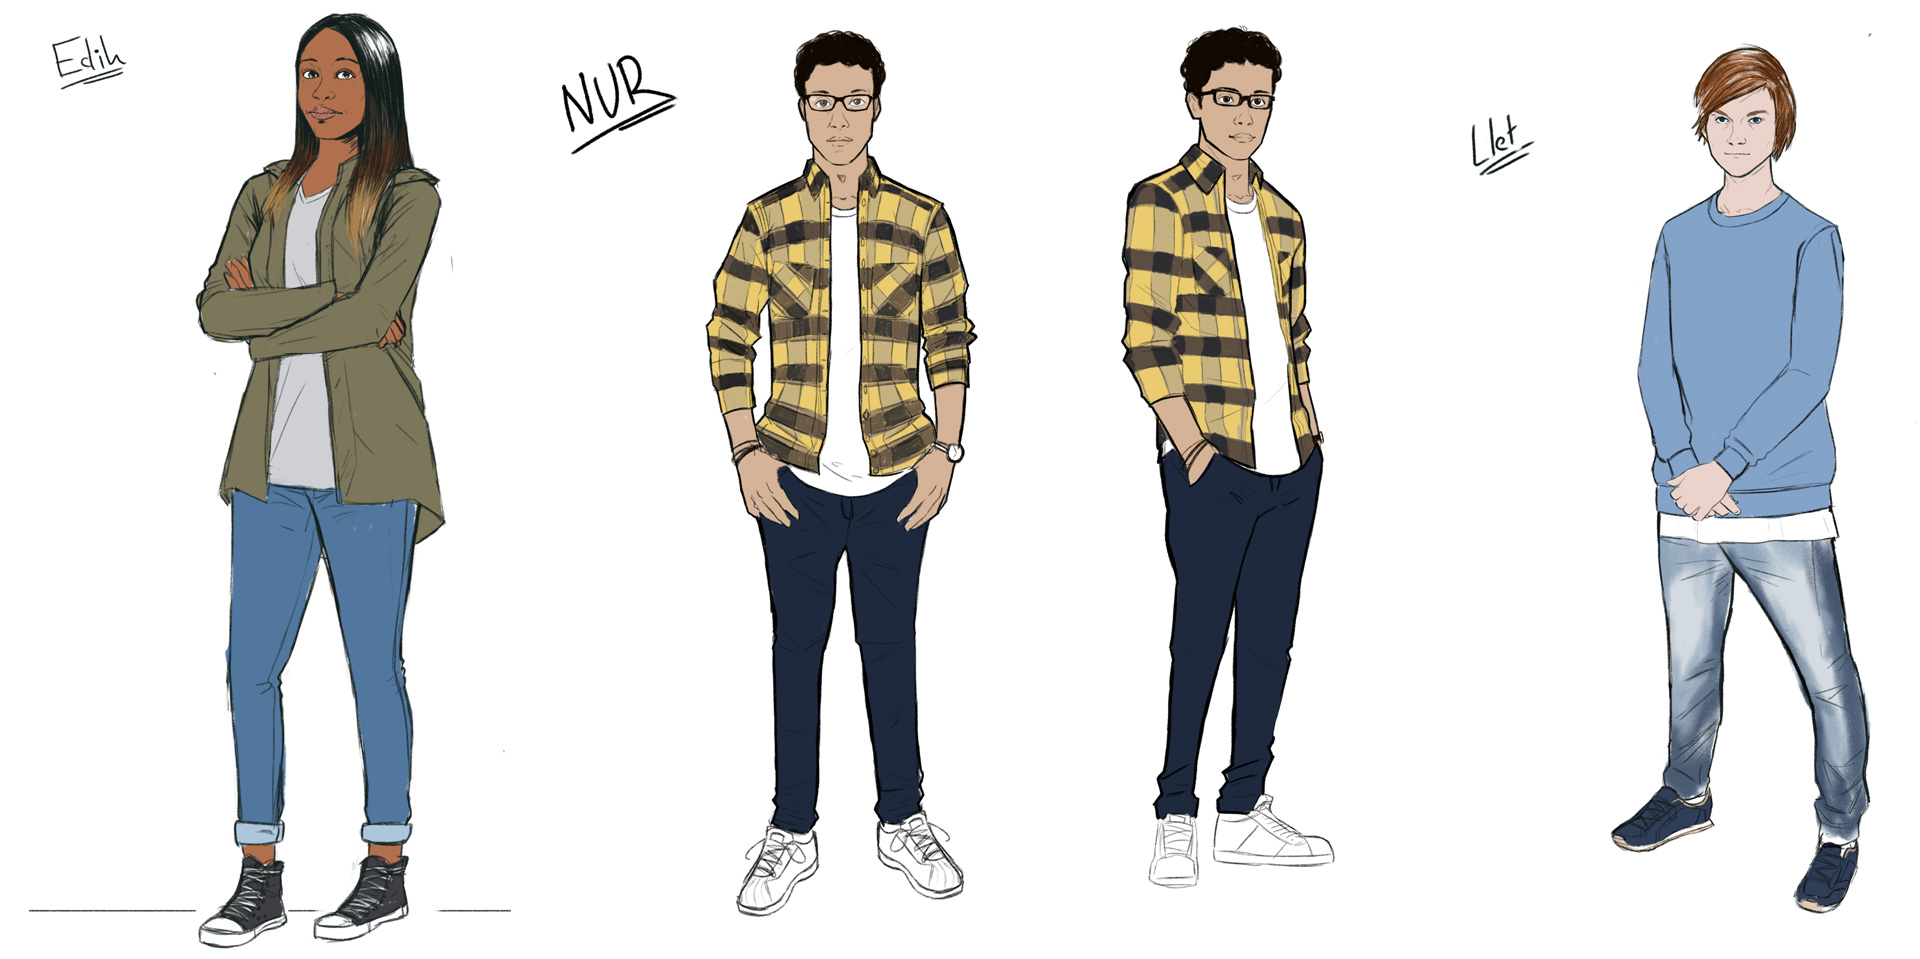 Character designs were created in a graphic novel illustration style